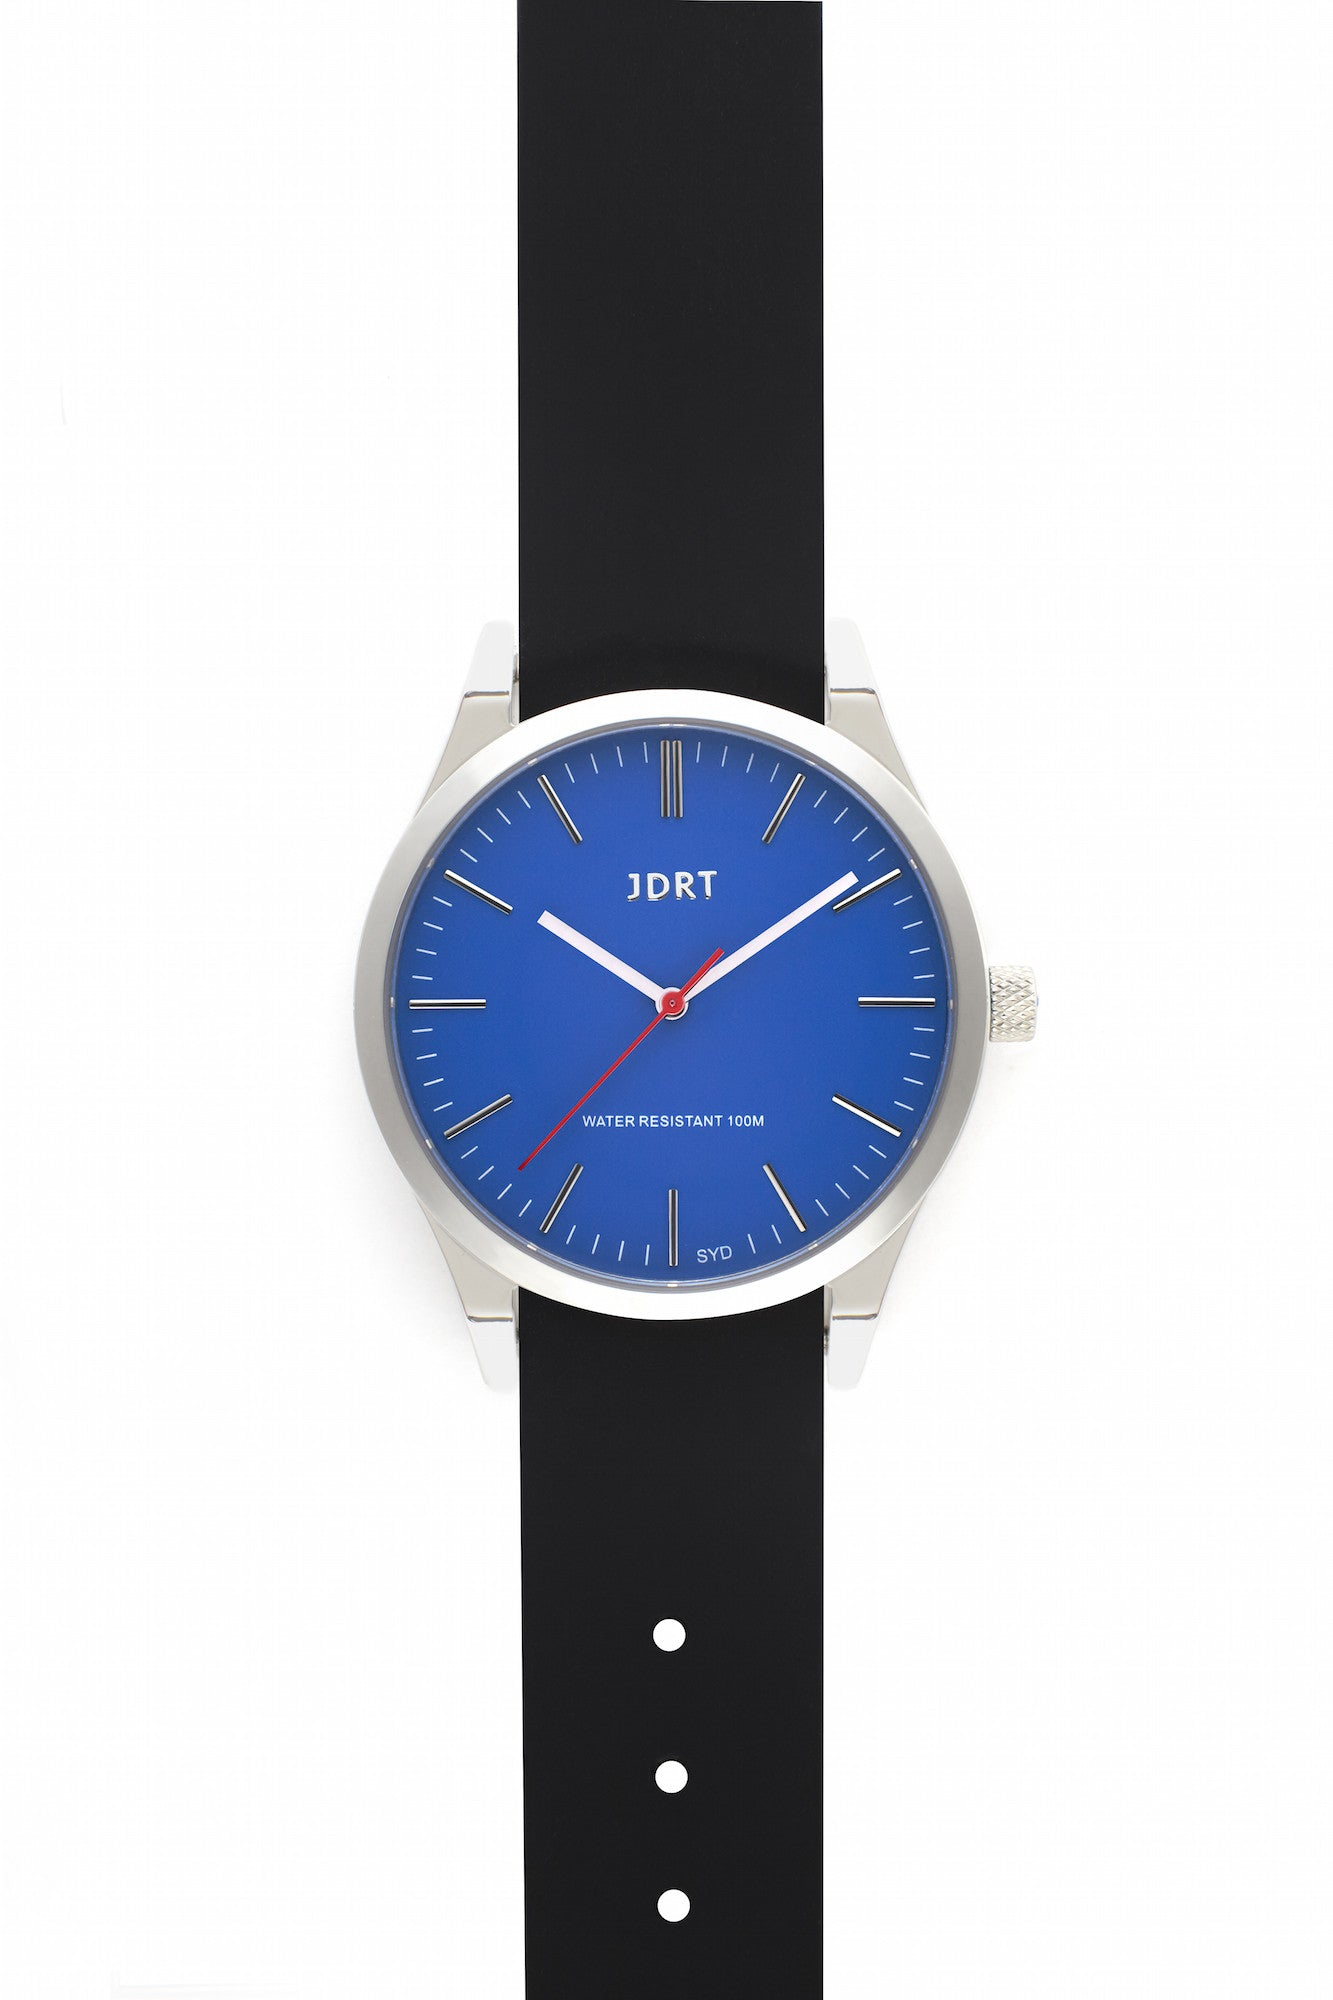 Azure Face with Jet Silicone Band